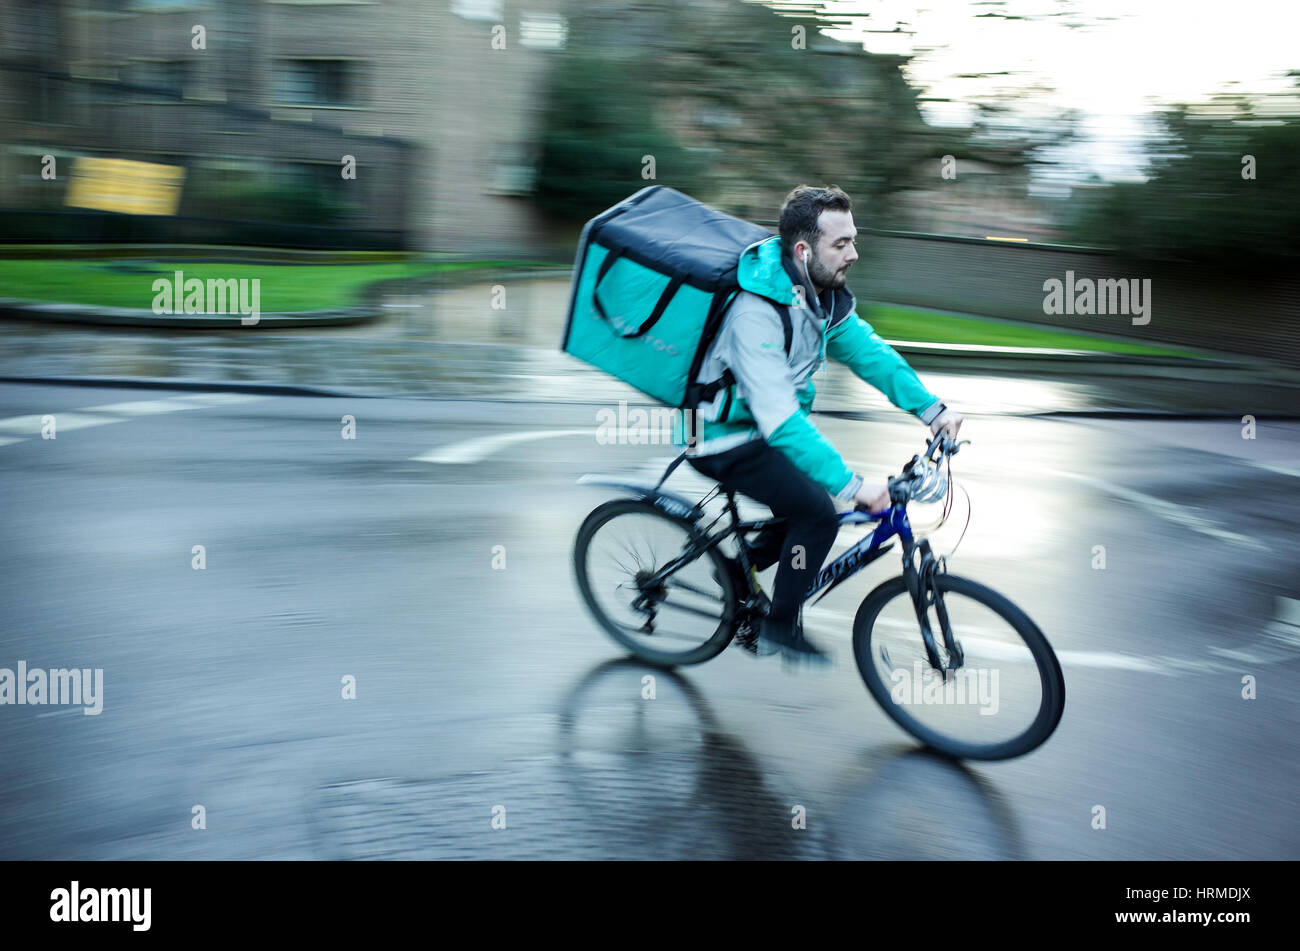 73f7d884134 A Deliveroo food delivery courier rushes through central Cambridge UK -  Stock Image